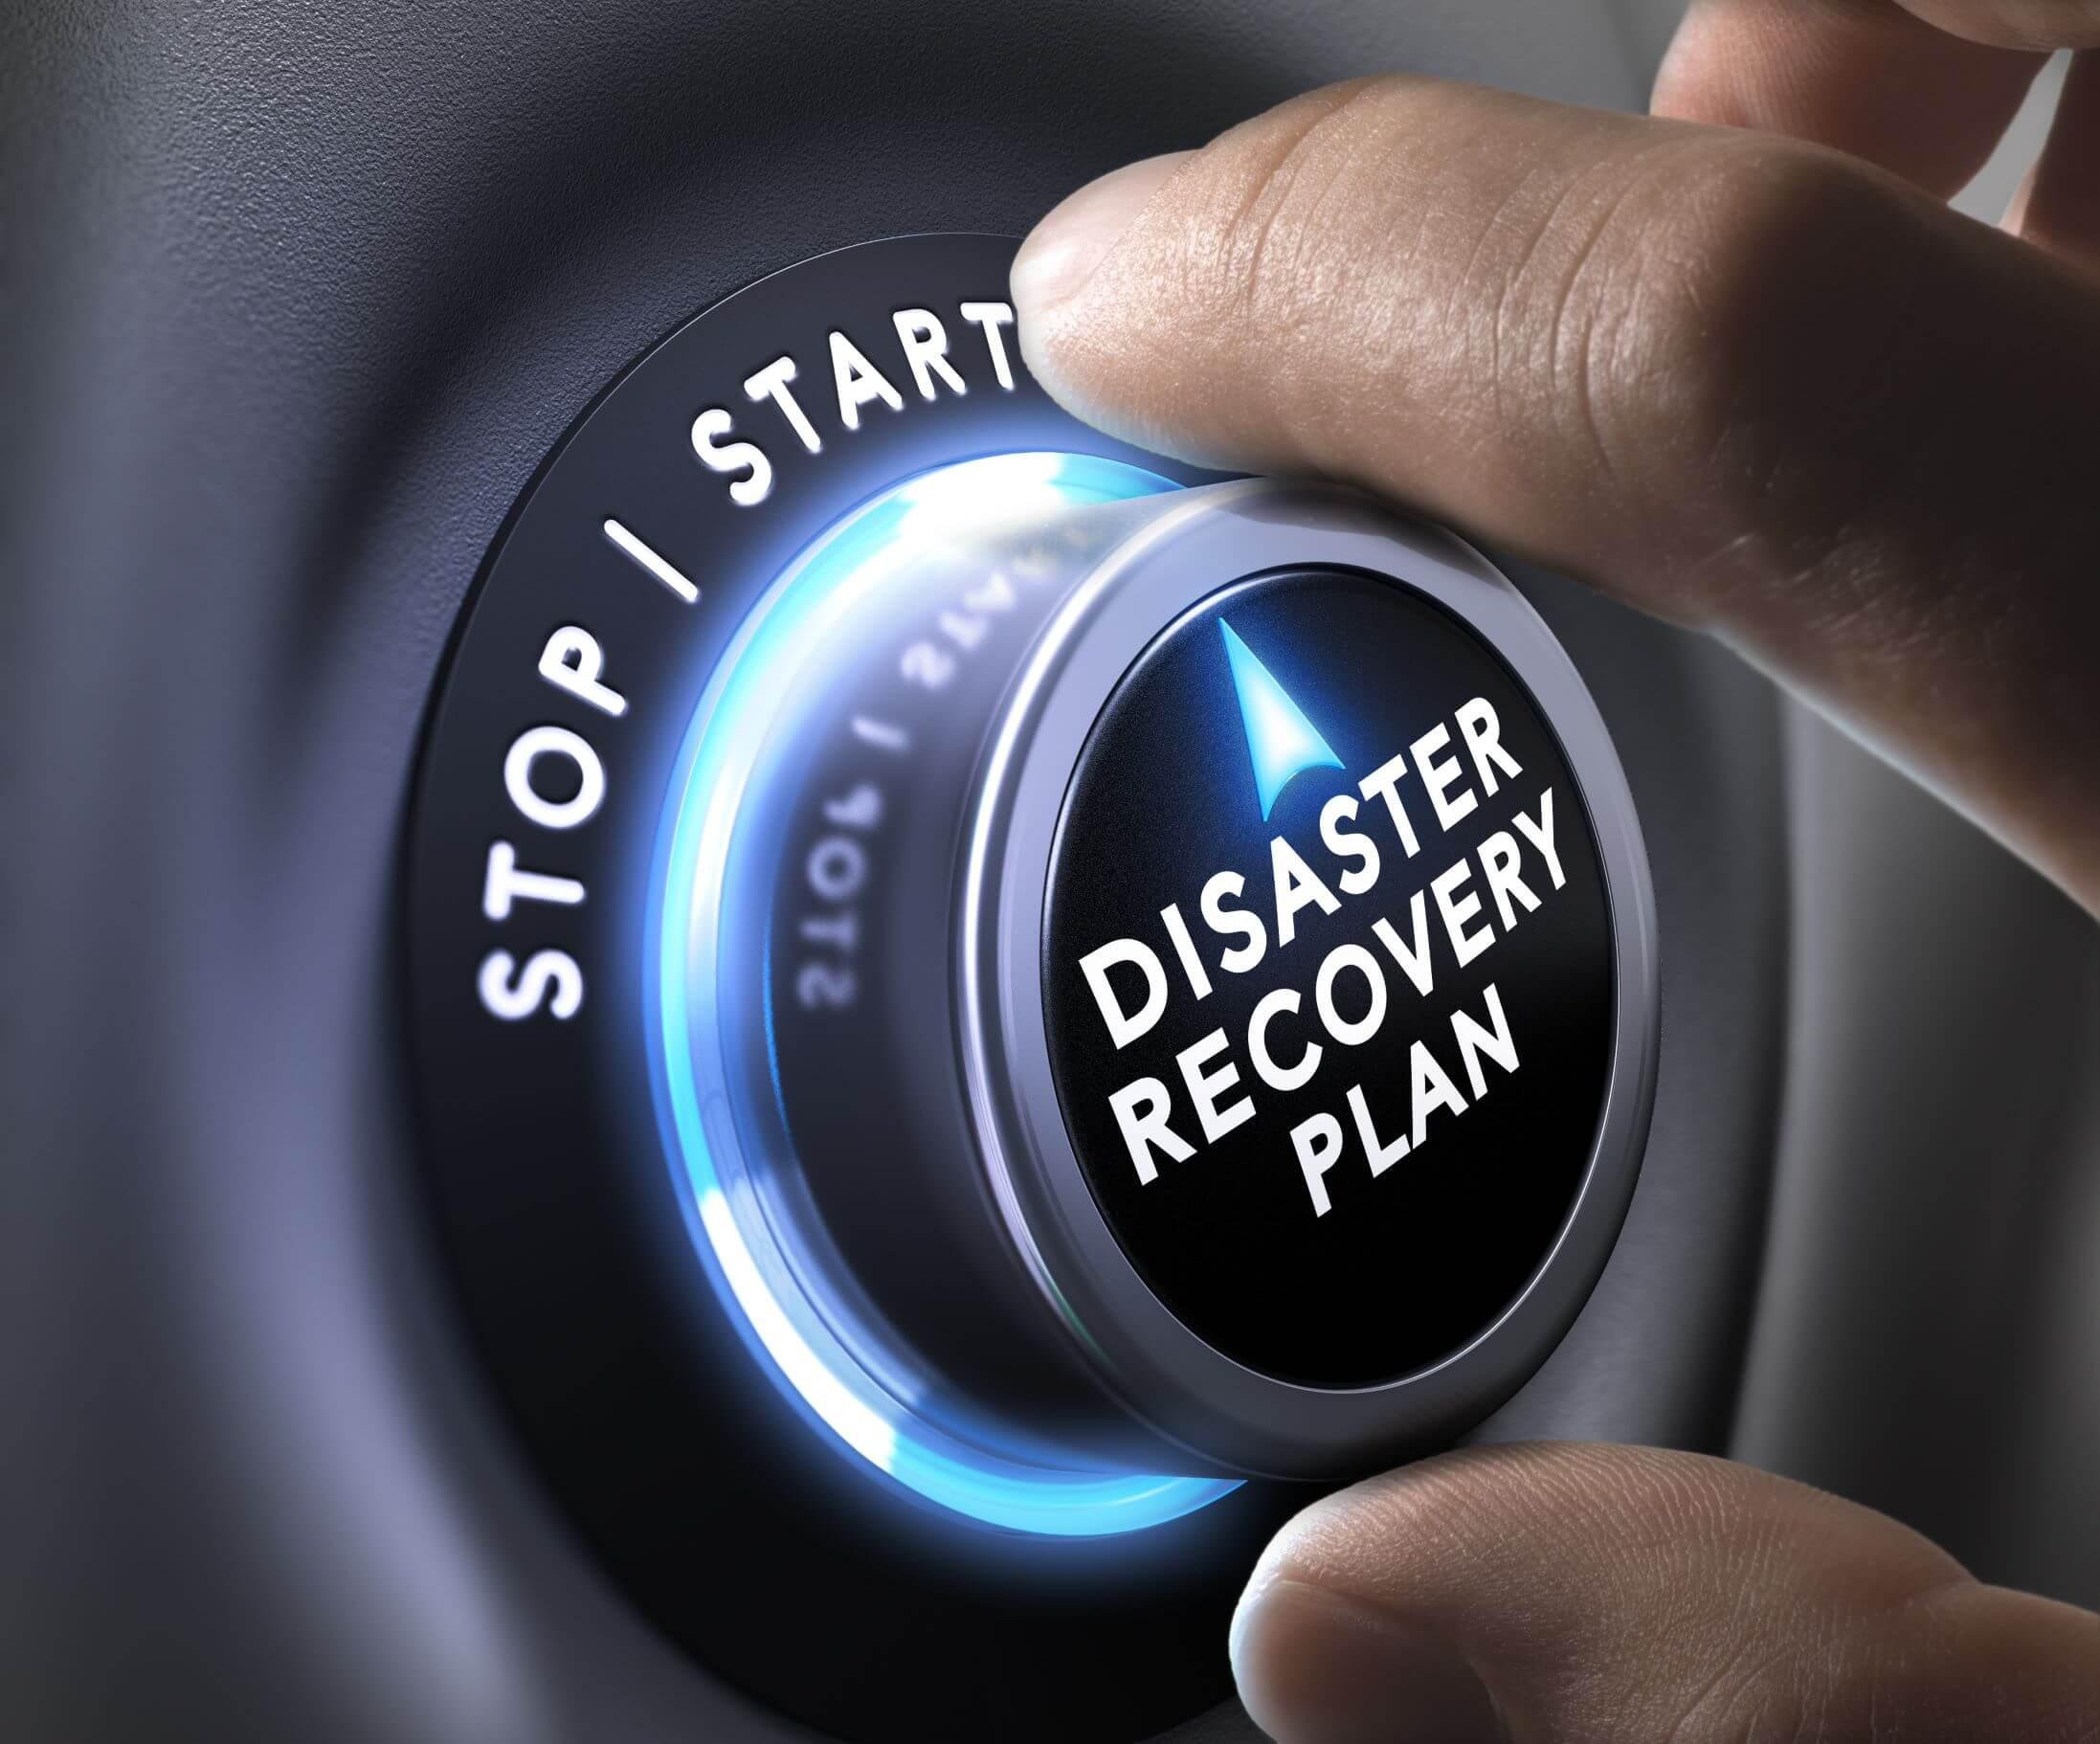 Be Prepared When Disaster Strikes